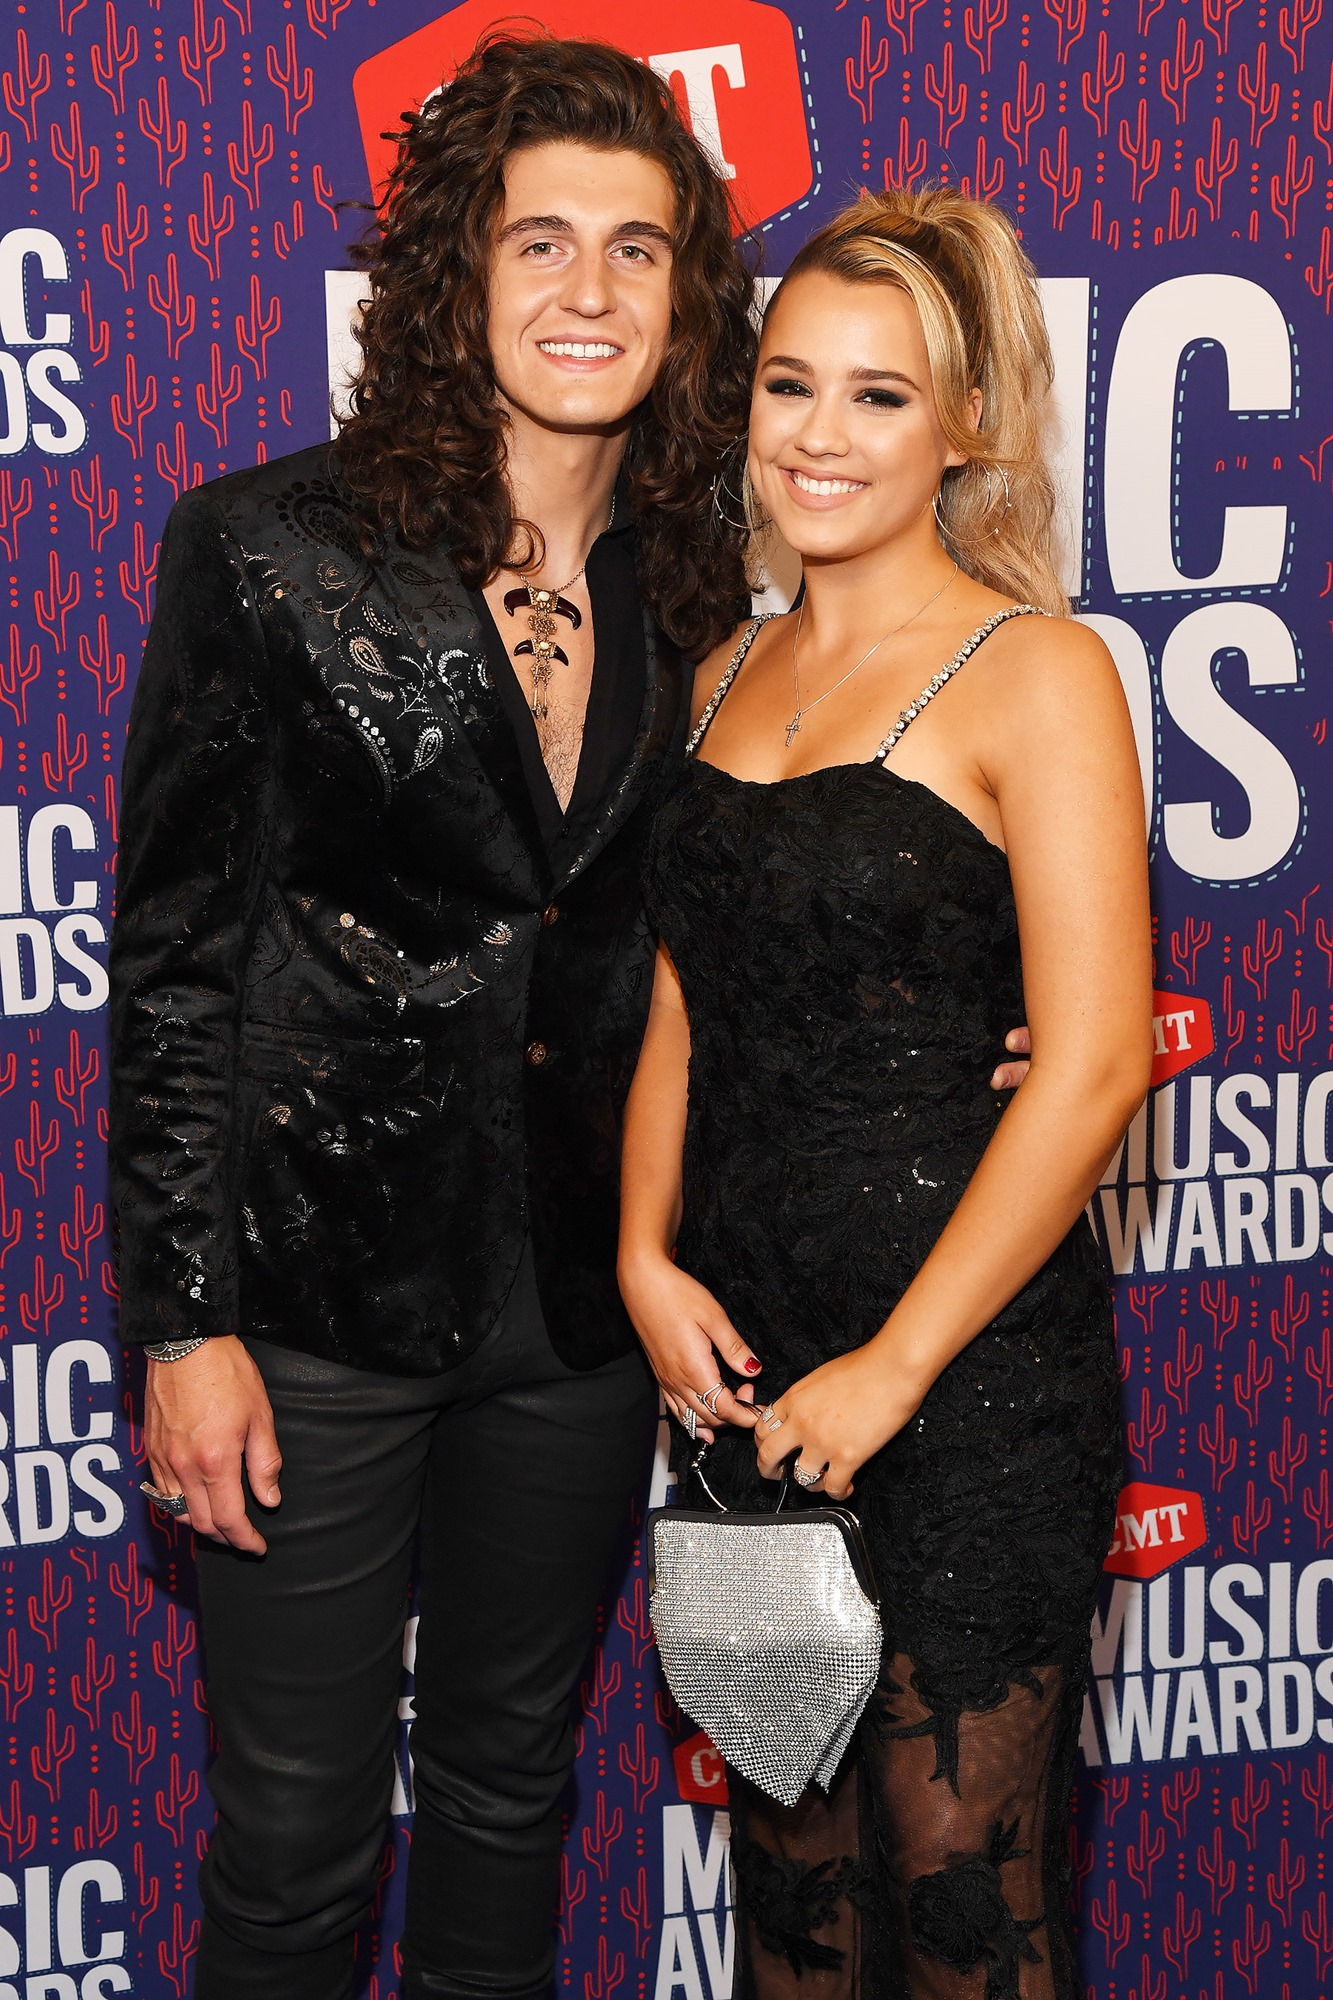 GABBY BARRETT AND CADE FOEHNER AT THE CMT MUSIC AWARDS ON JUNE 5, 2019.